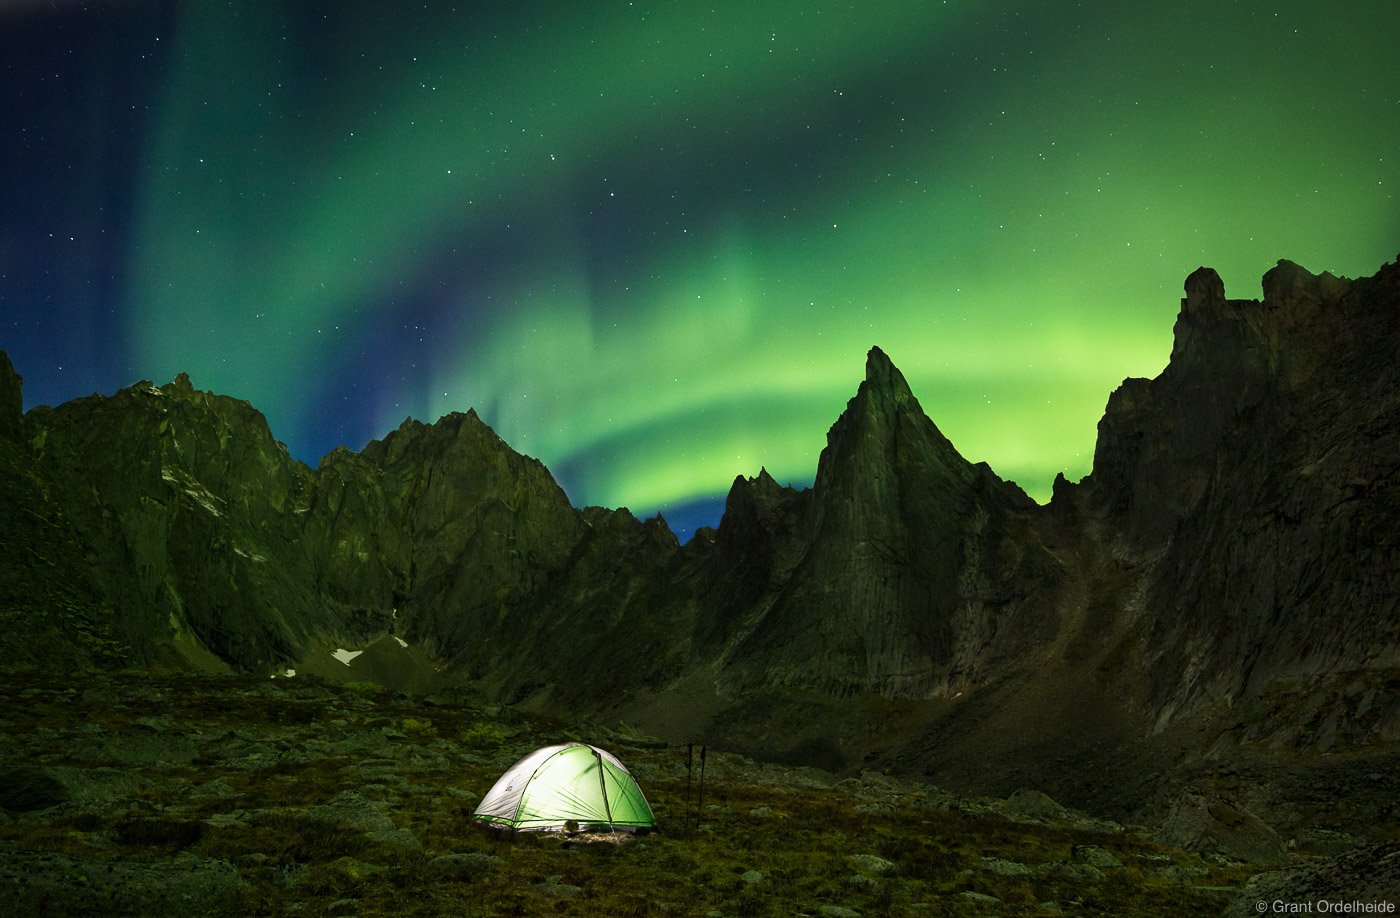 tombstone, aurora, territorial, park, yukon, canada, illuminated, tent, remote, valley, , photo